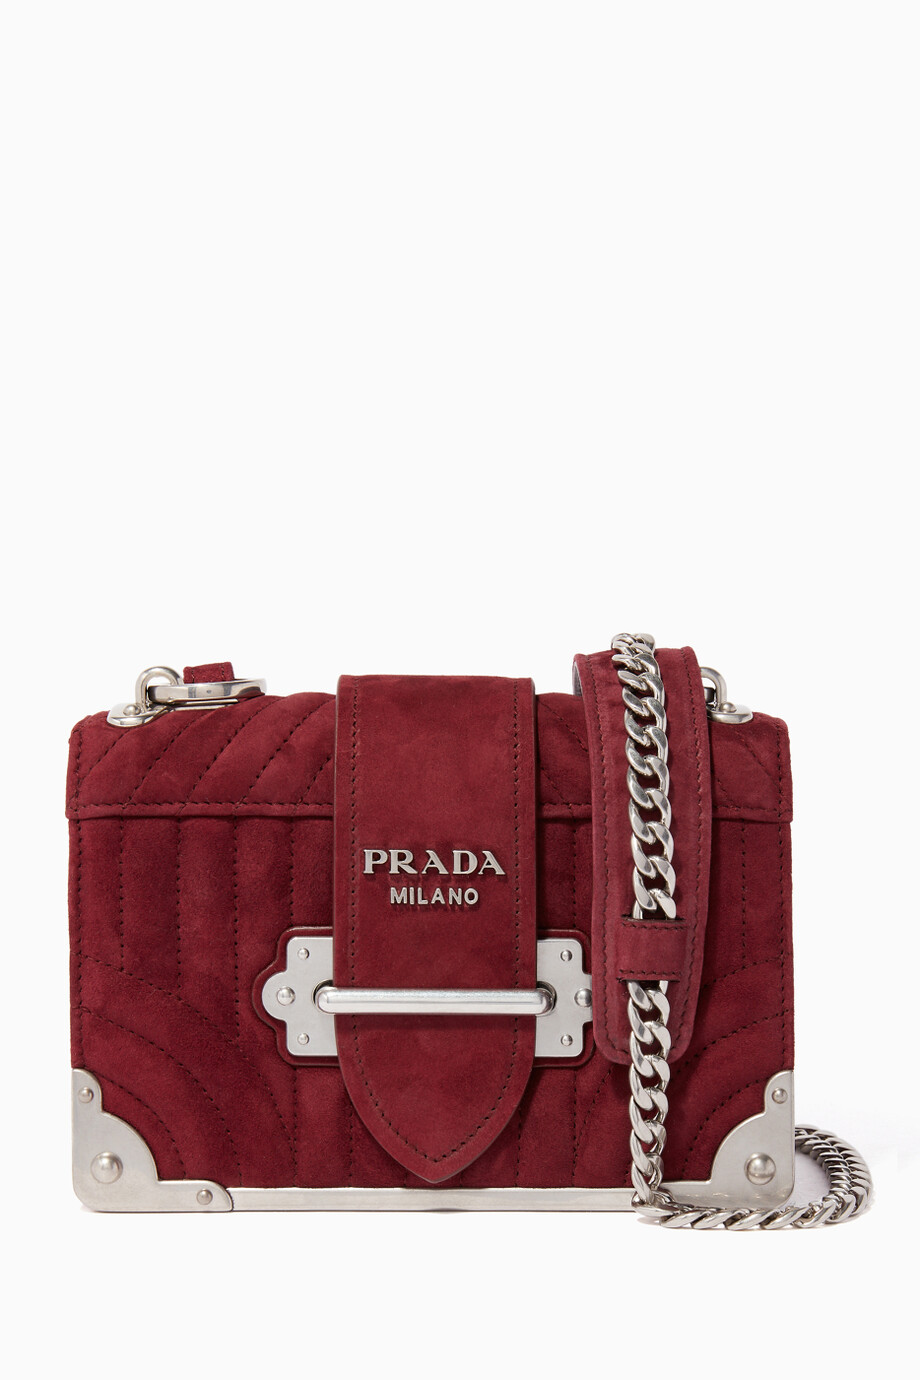 d7693b96727 Shop Prada Red Dark-Red Mini Cahiers Quilted Suede Shoulder Bag for ...